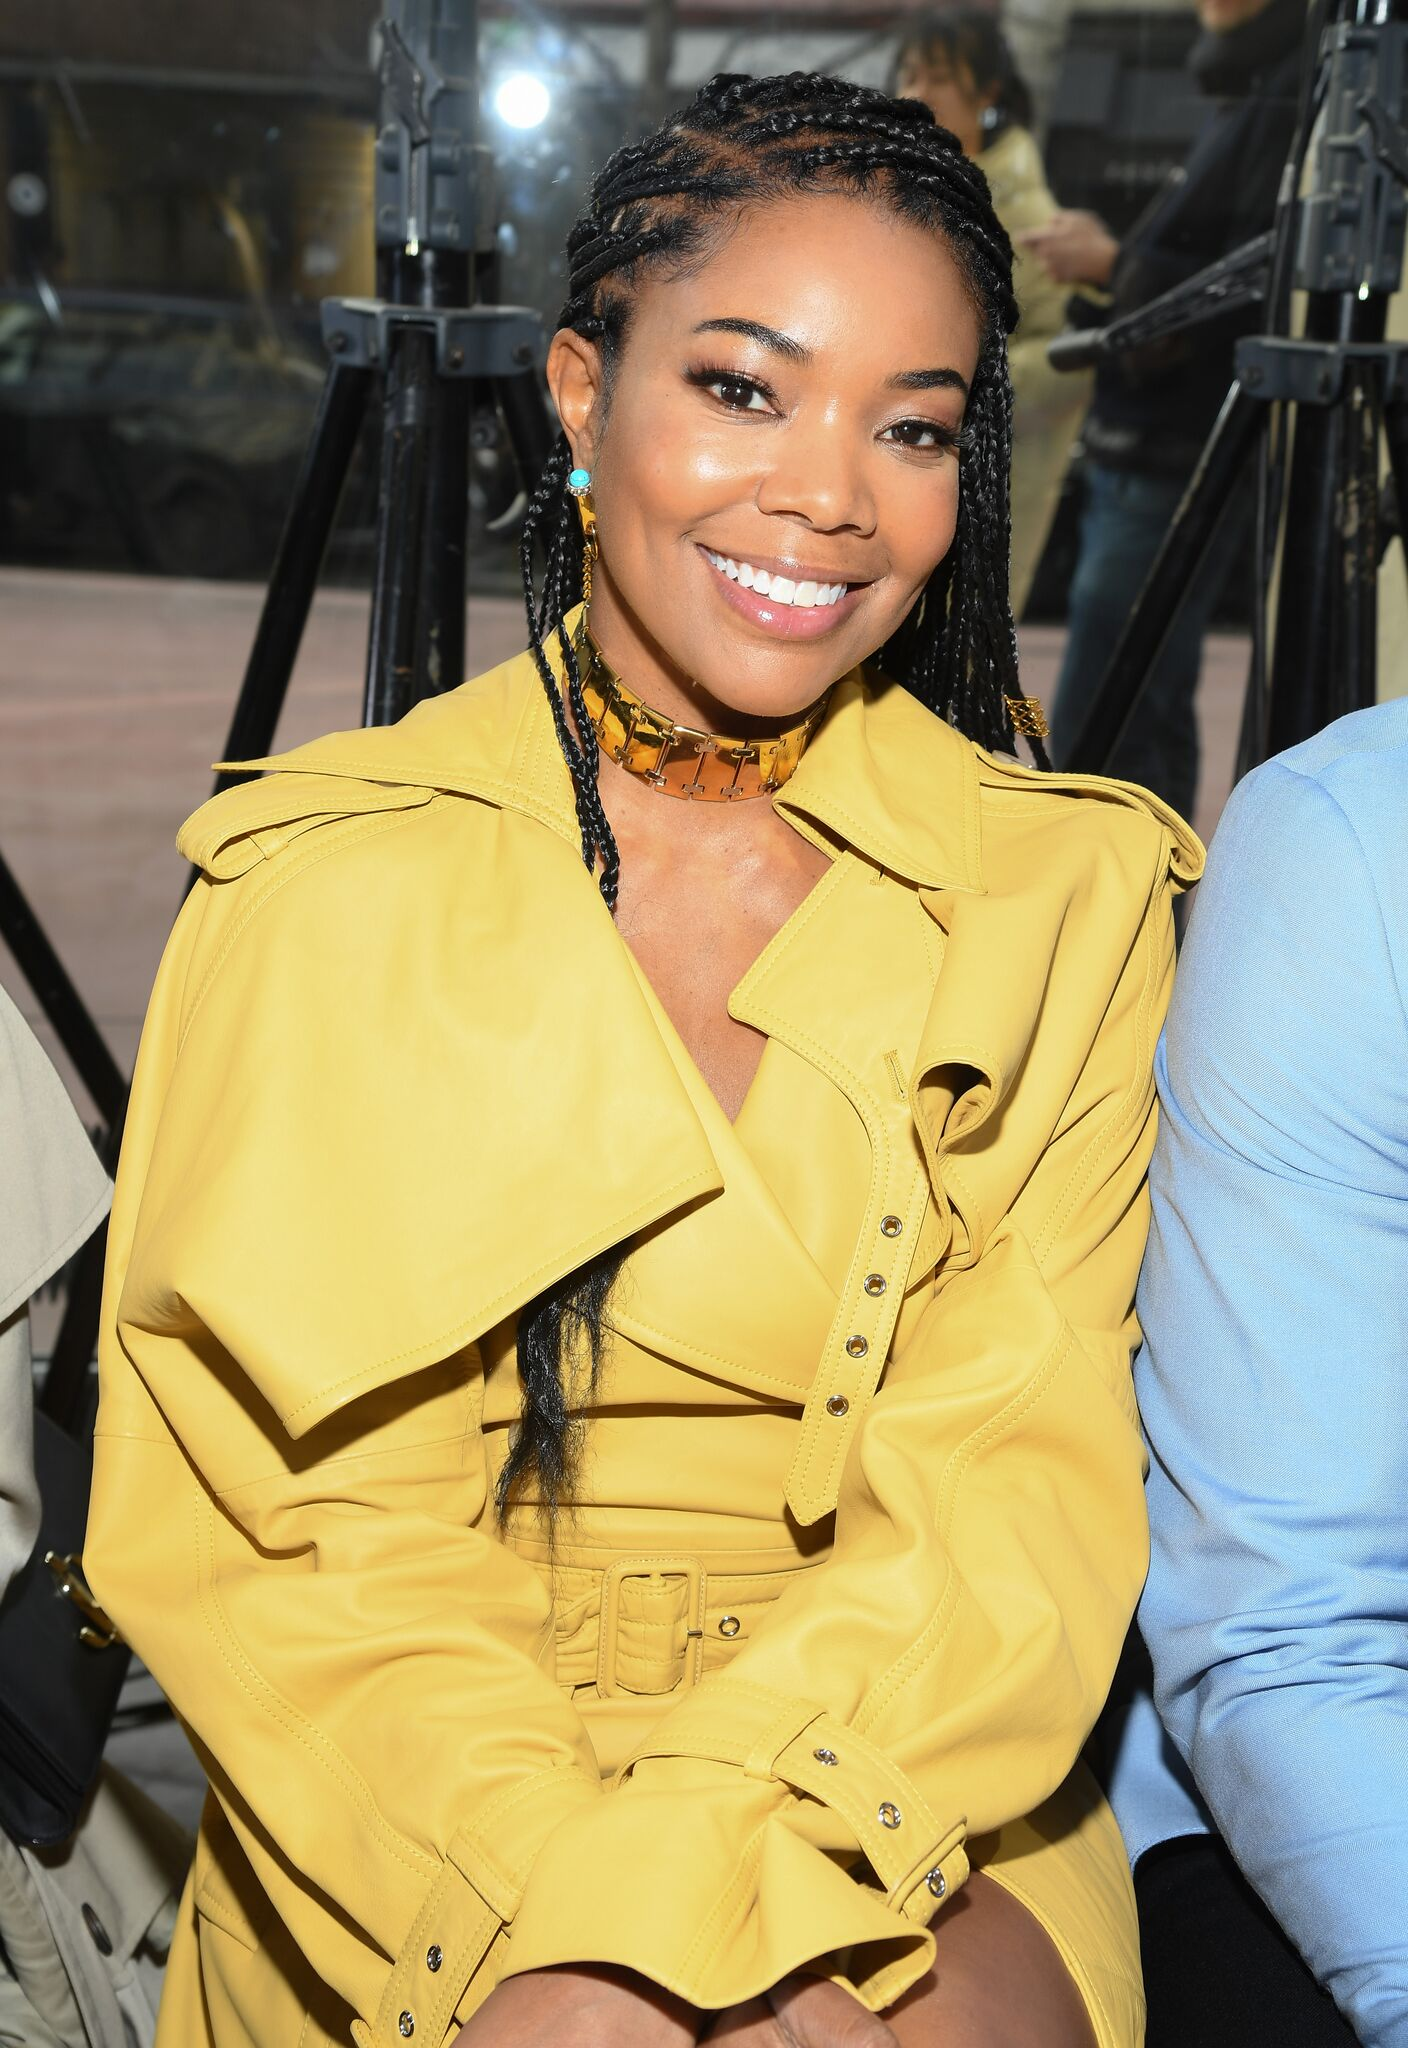 Gabrielle Union attends the Lanvin Menswear Fall/Winter 2020-2021 show as part of Paris Fashion Week on January 19, 2020 | Photo: Getty Images/GlobalImagesUkraine